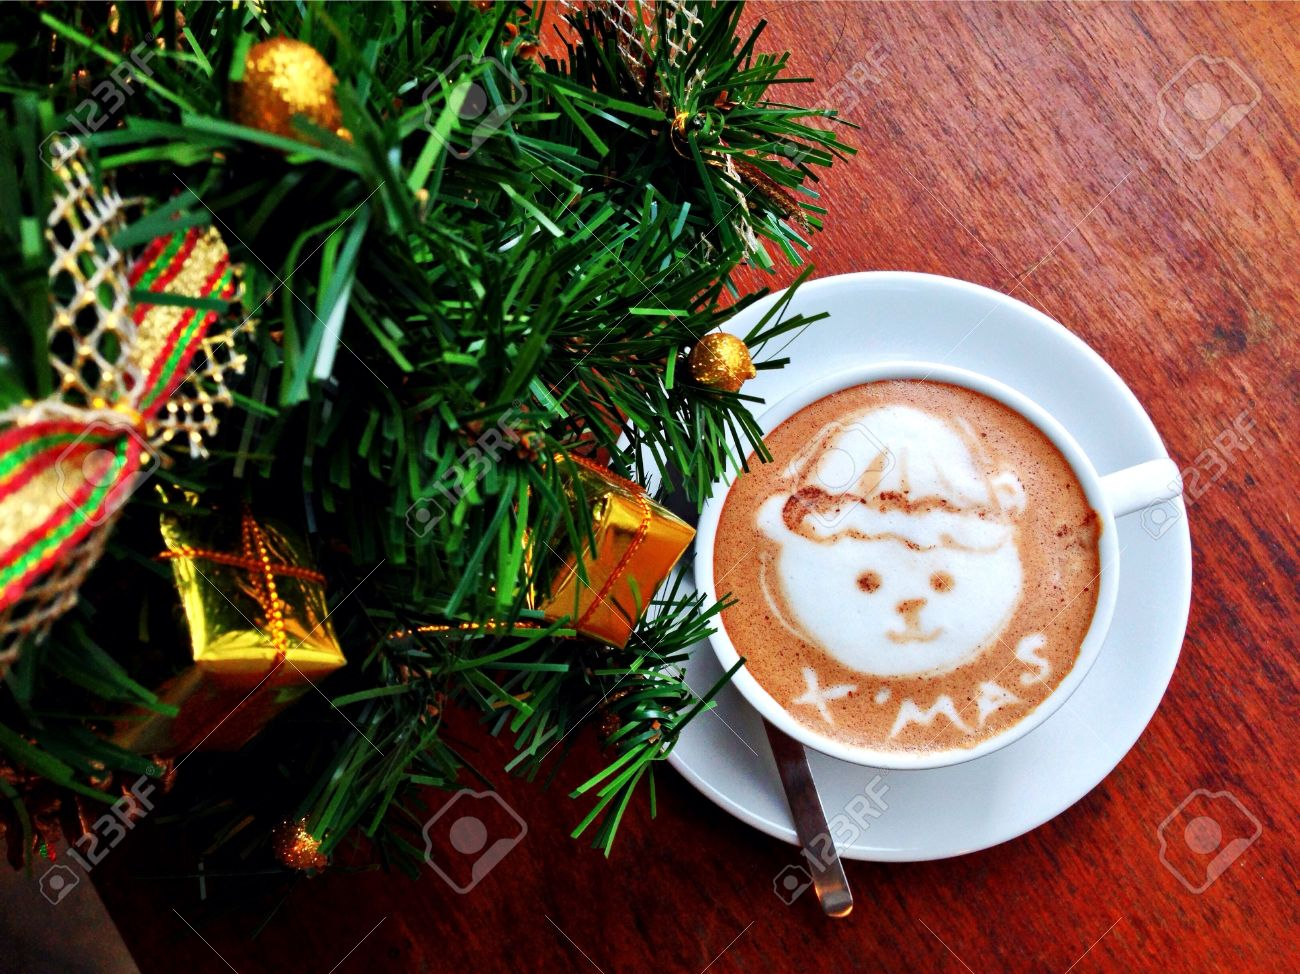 Coffee Christmas Tree.The Coffee Art With Christmas Tree On The Wooden Table